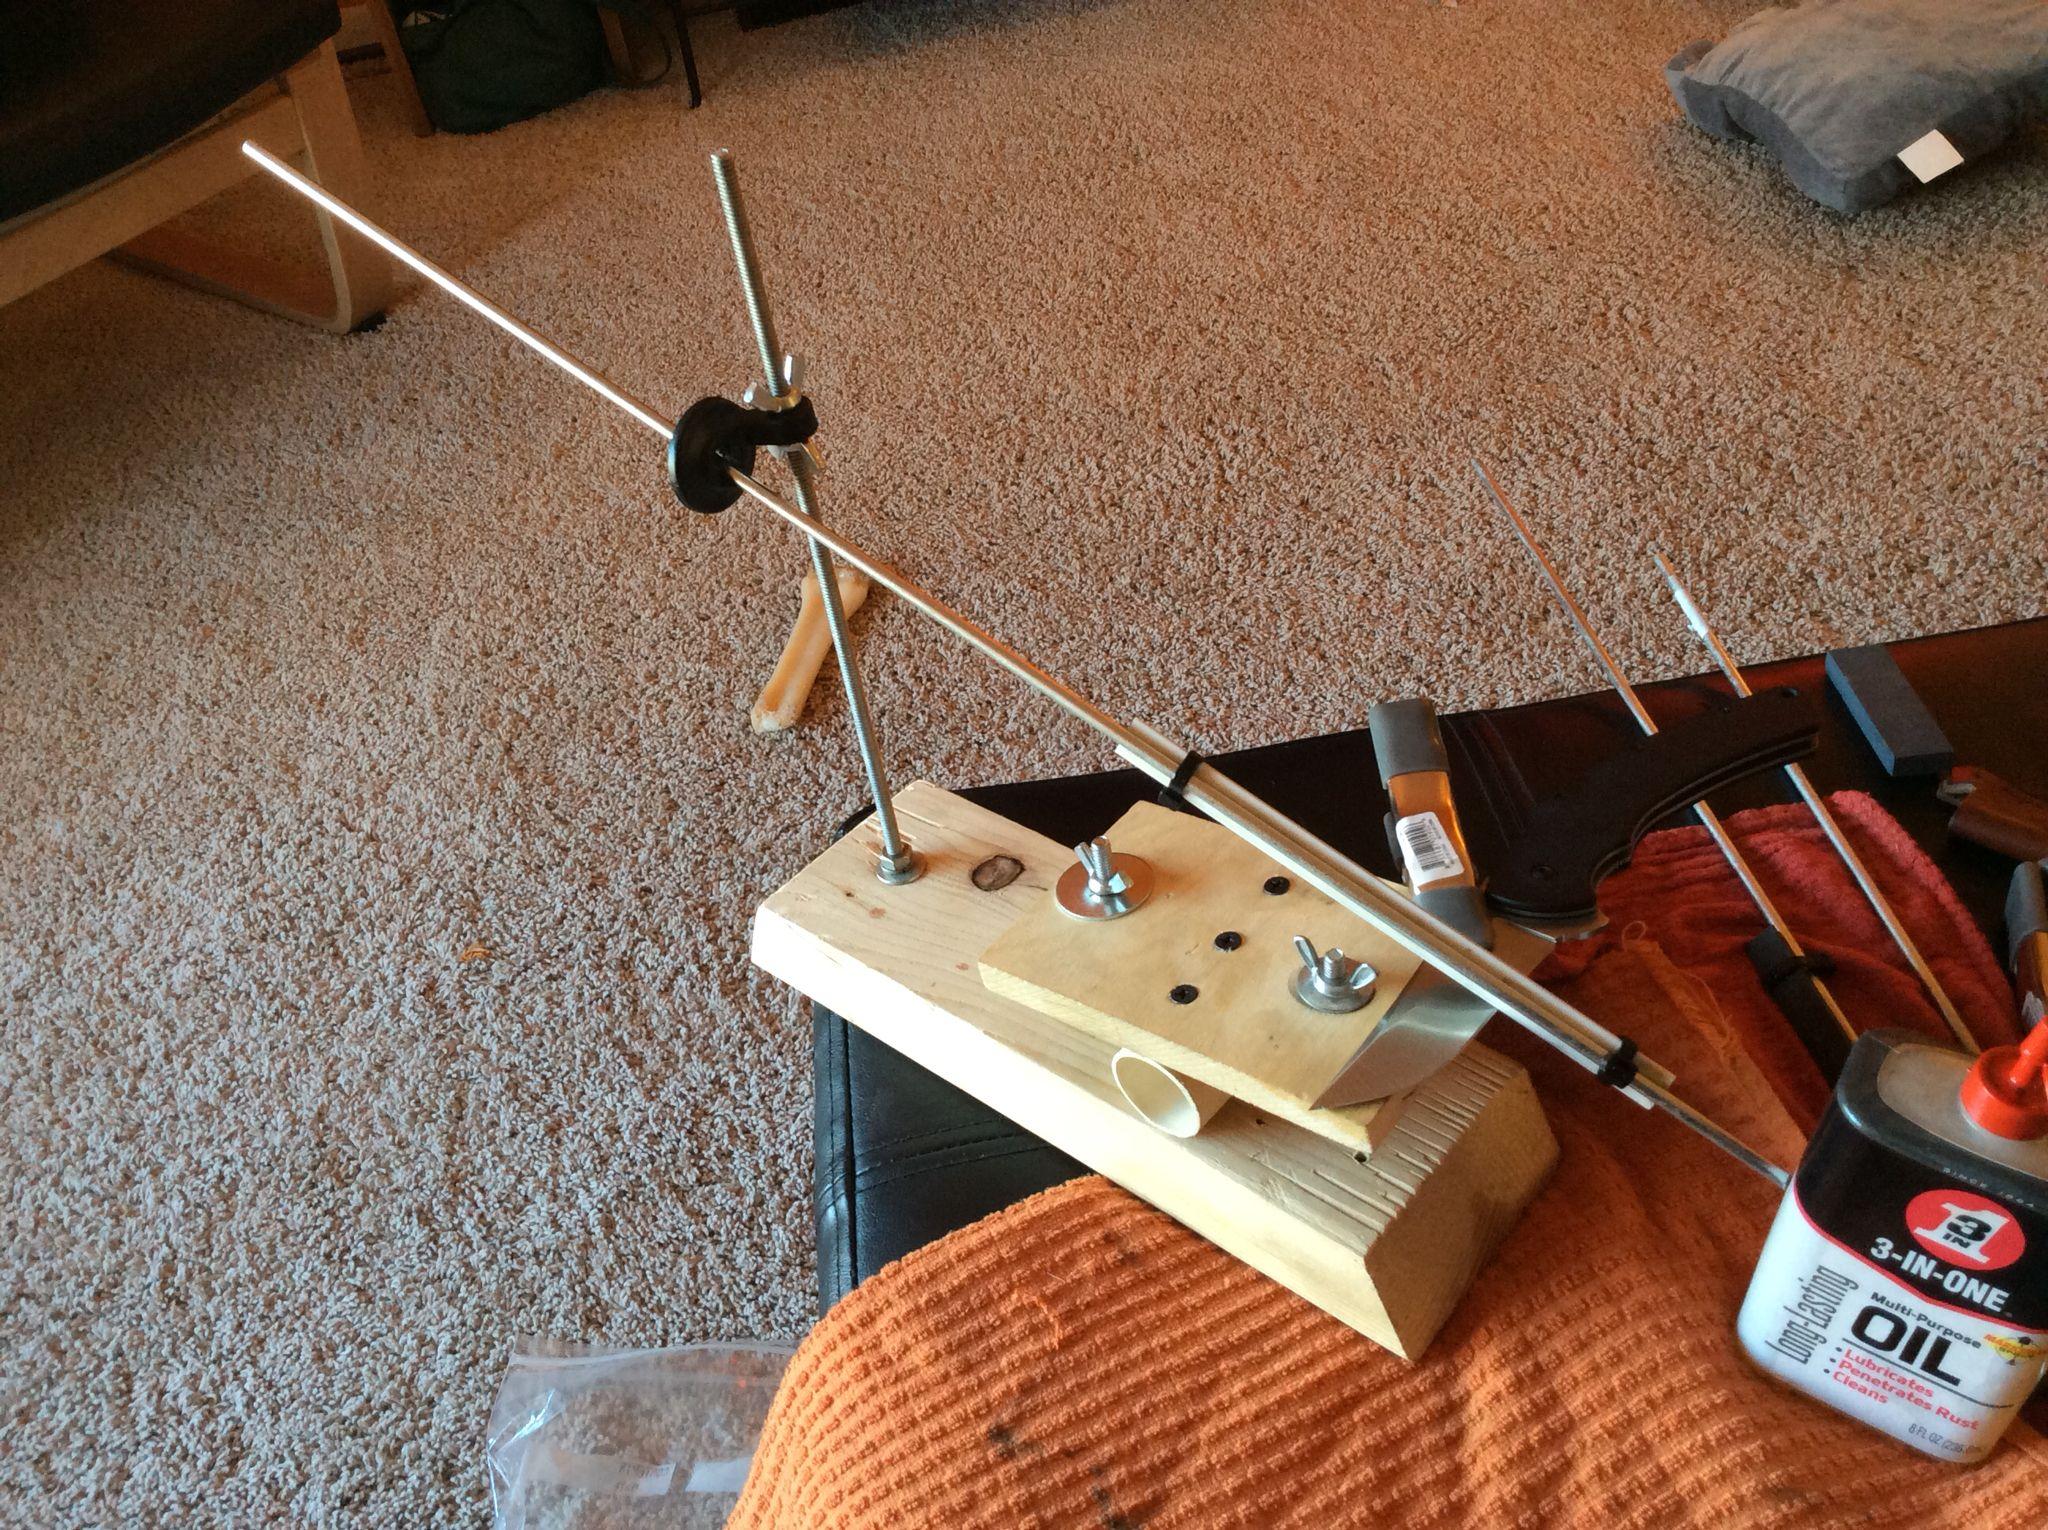 Diy knife sharpening jig made from spare wood existing